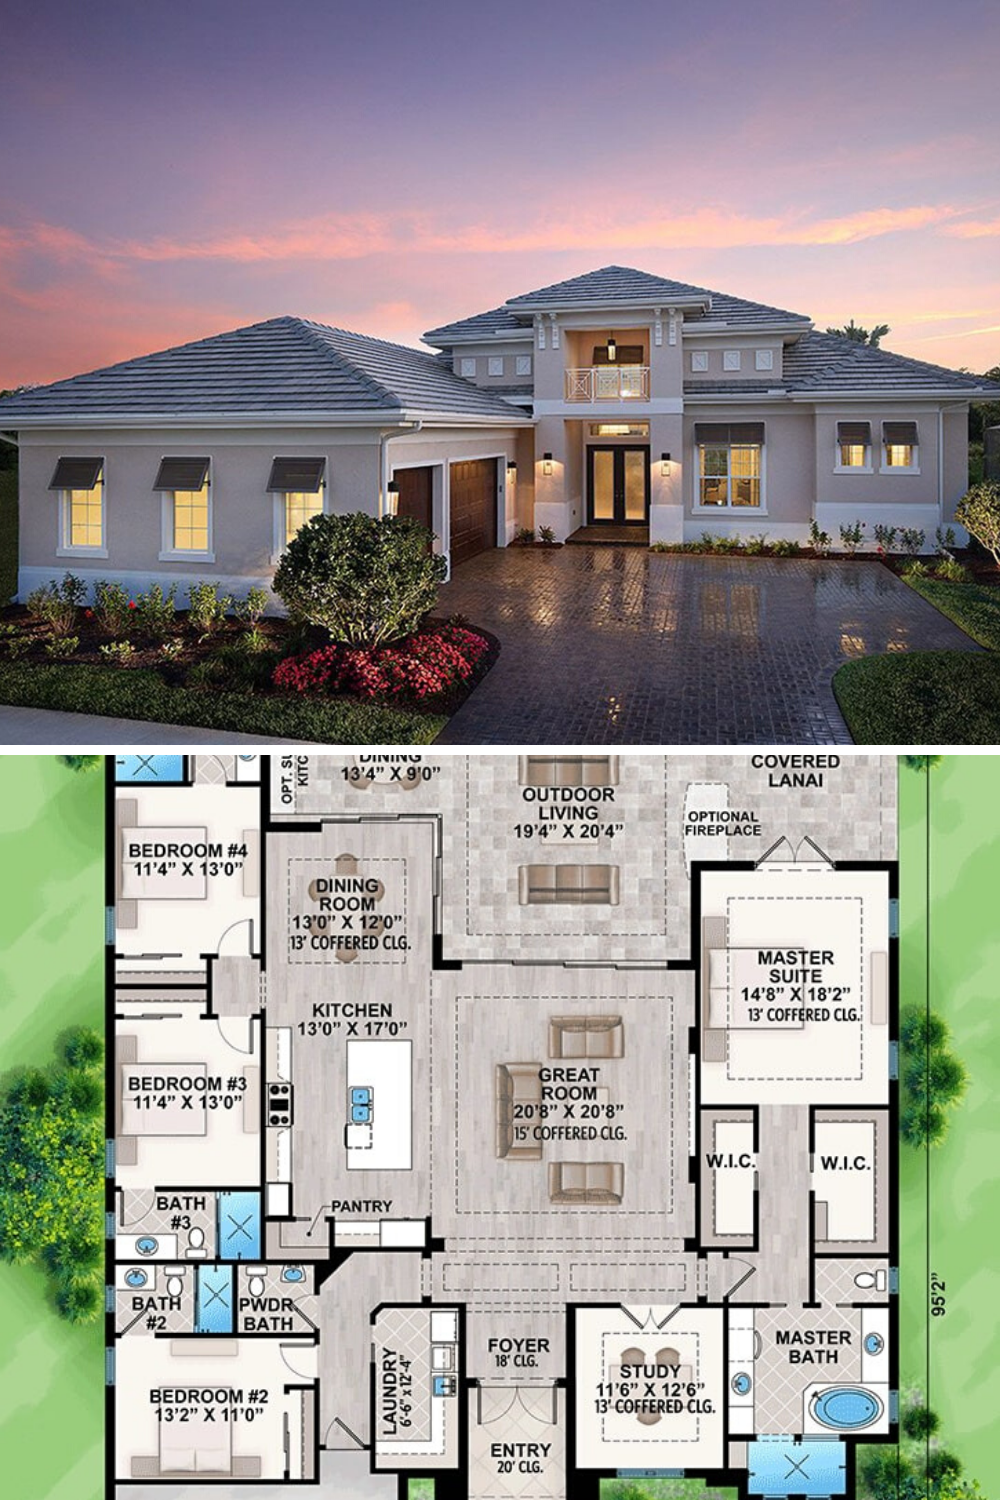 Single Story 4 Bedroom Florida Home Floor Plan Florida House Plans Beautiful House Plans House Construction Plan